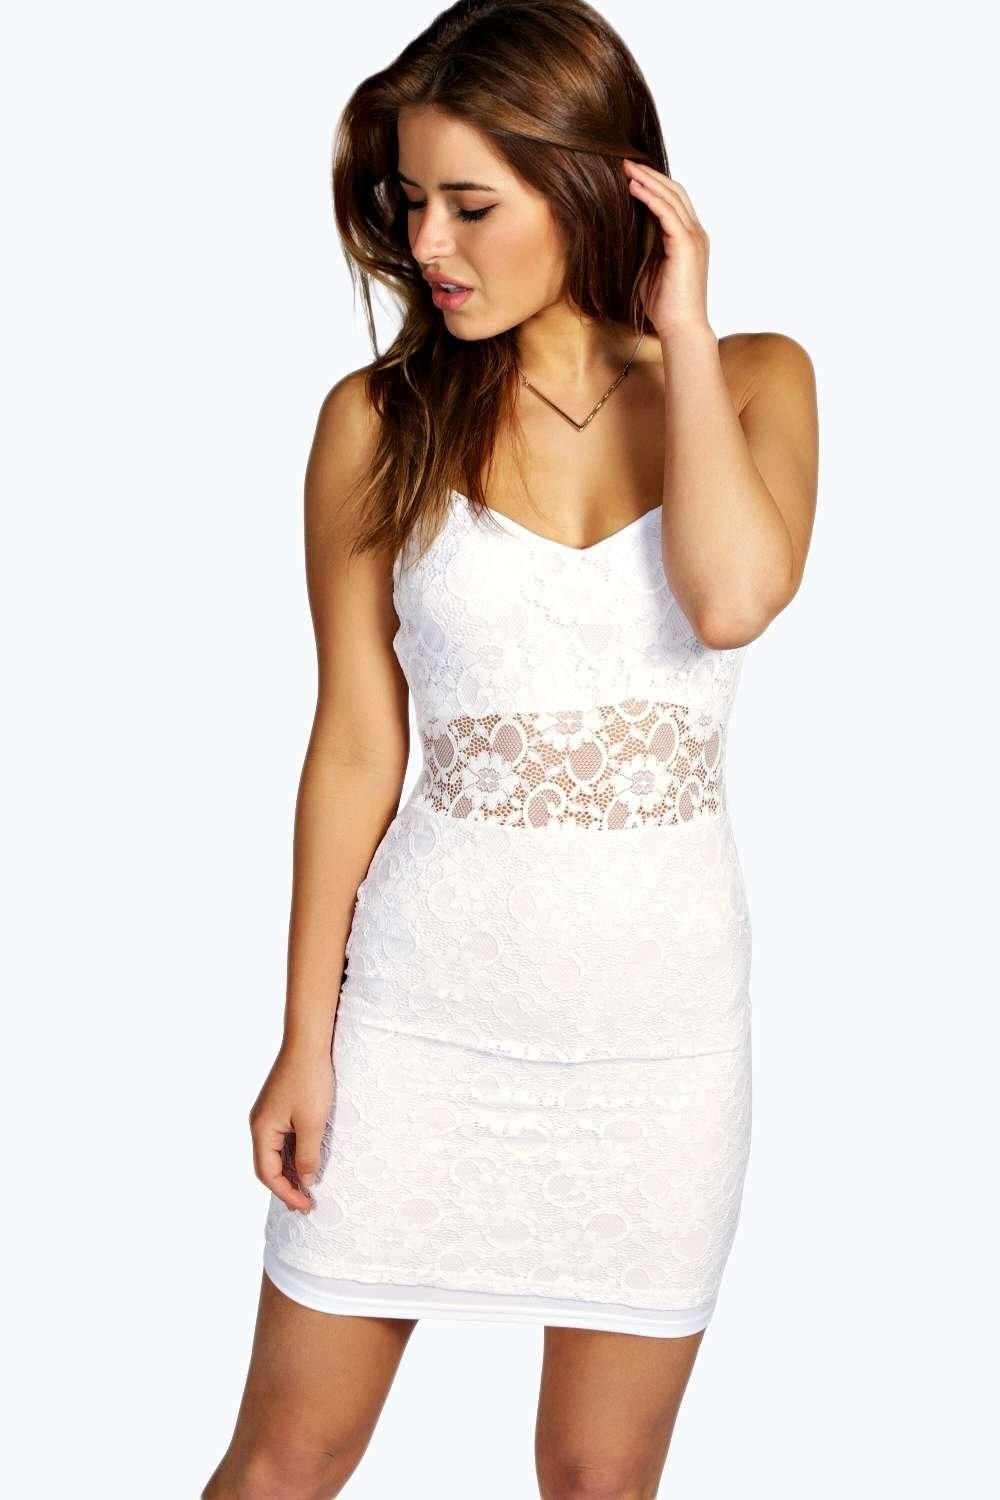 Boohoo Boutique Lace Panelled Bodycon Dress Get To Buy Cheap Online T8lDxjui